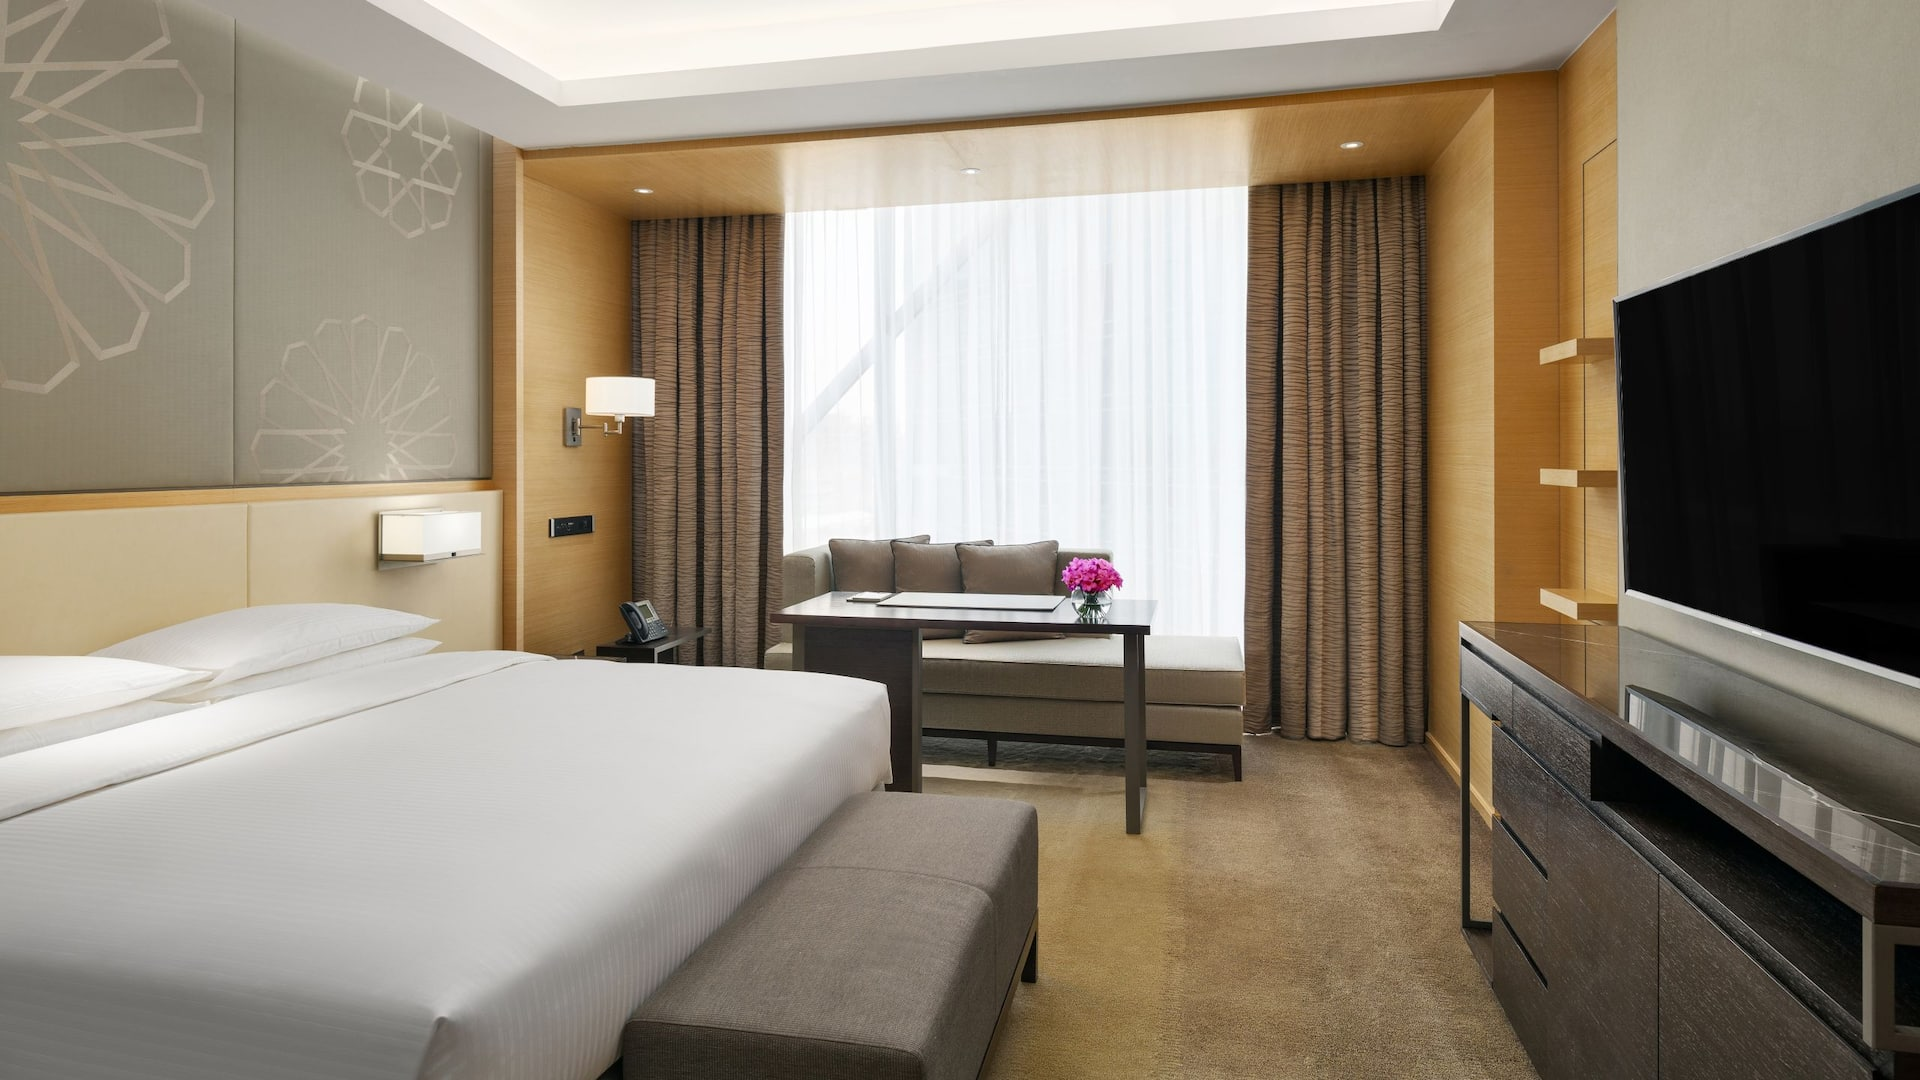 King-sized bed by large window with TV and sofa in hotel room